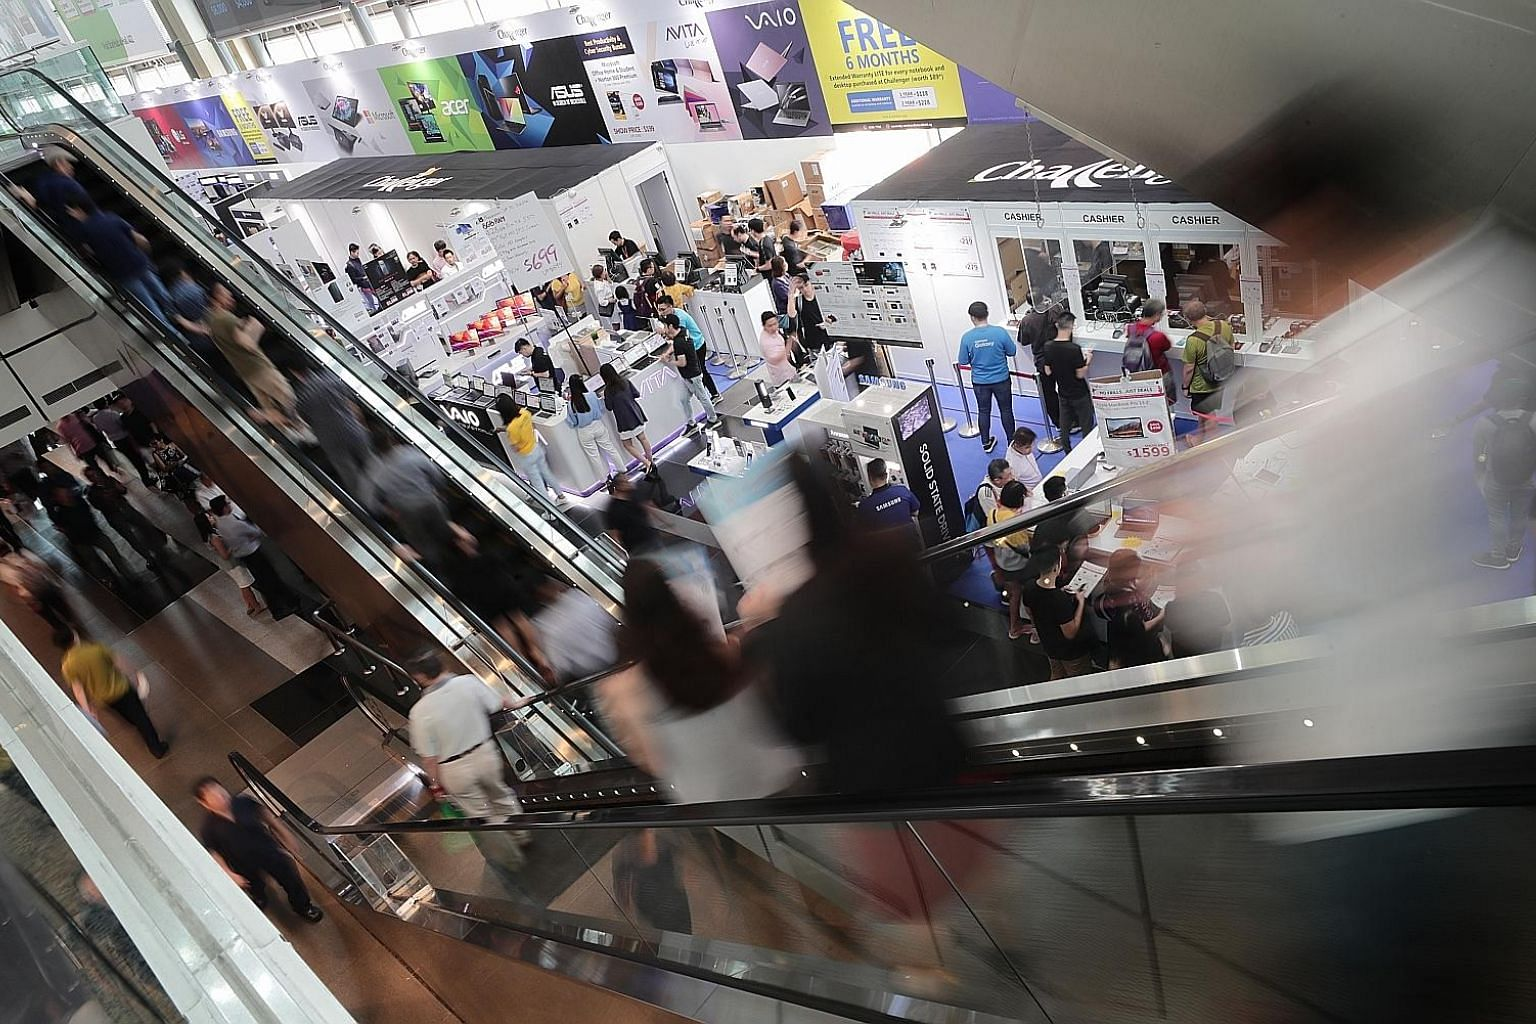 Around 500,000 visitors are expected at the four-day Comex 2019 consumer technology show at Suntec Singapore that ends on Sunday. Photography buffs can also look forward to the photography seminars on hand.